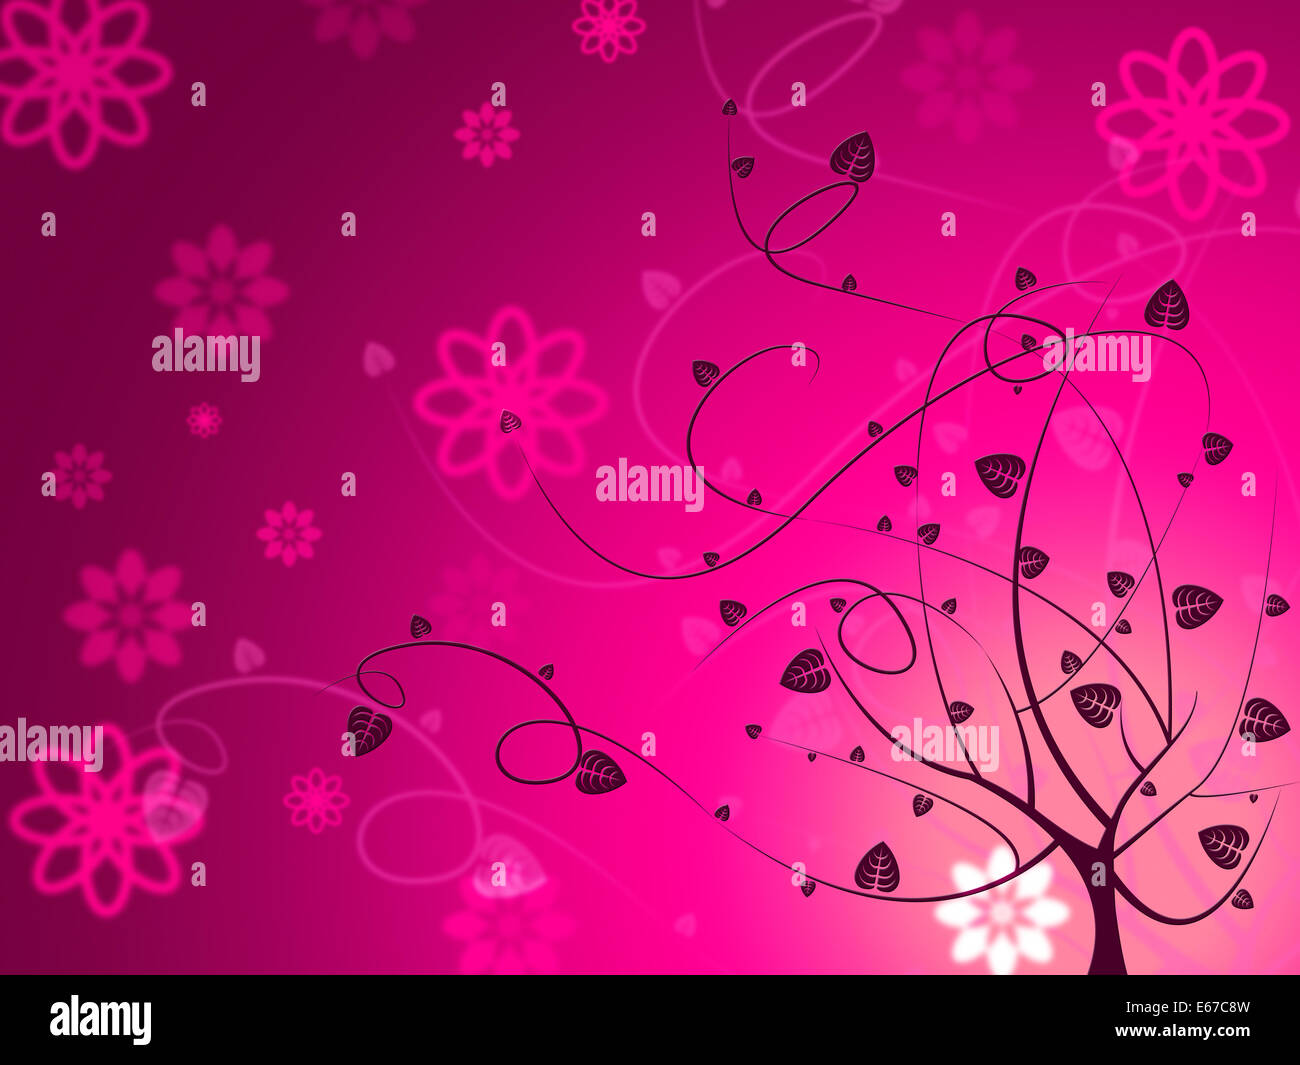 Floral Pink Meaning Florals Design And Flowers Stock Photo 72692729